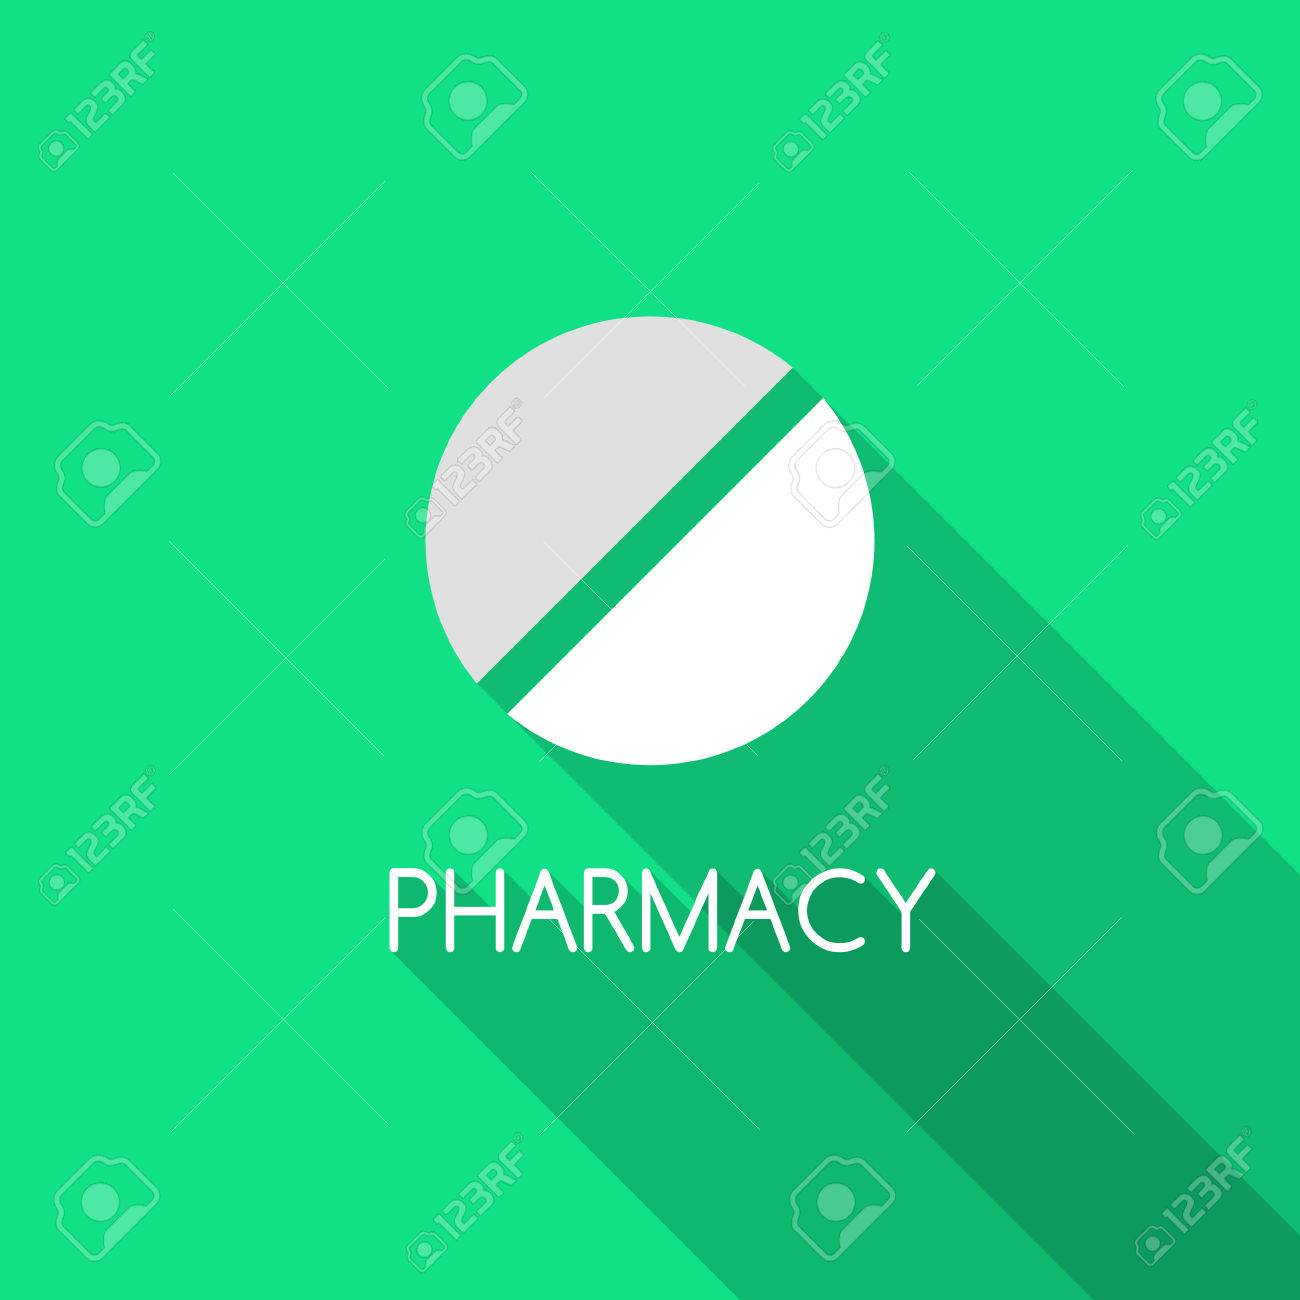 pharmacy design pill on green background and pharmacy text